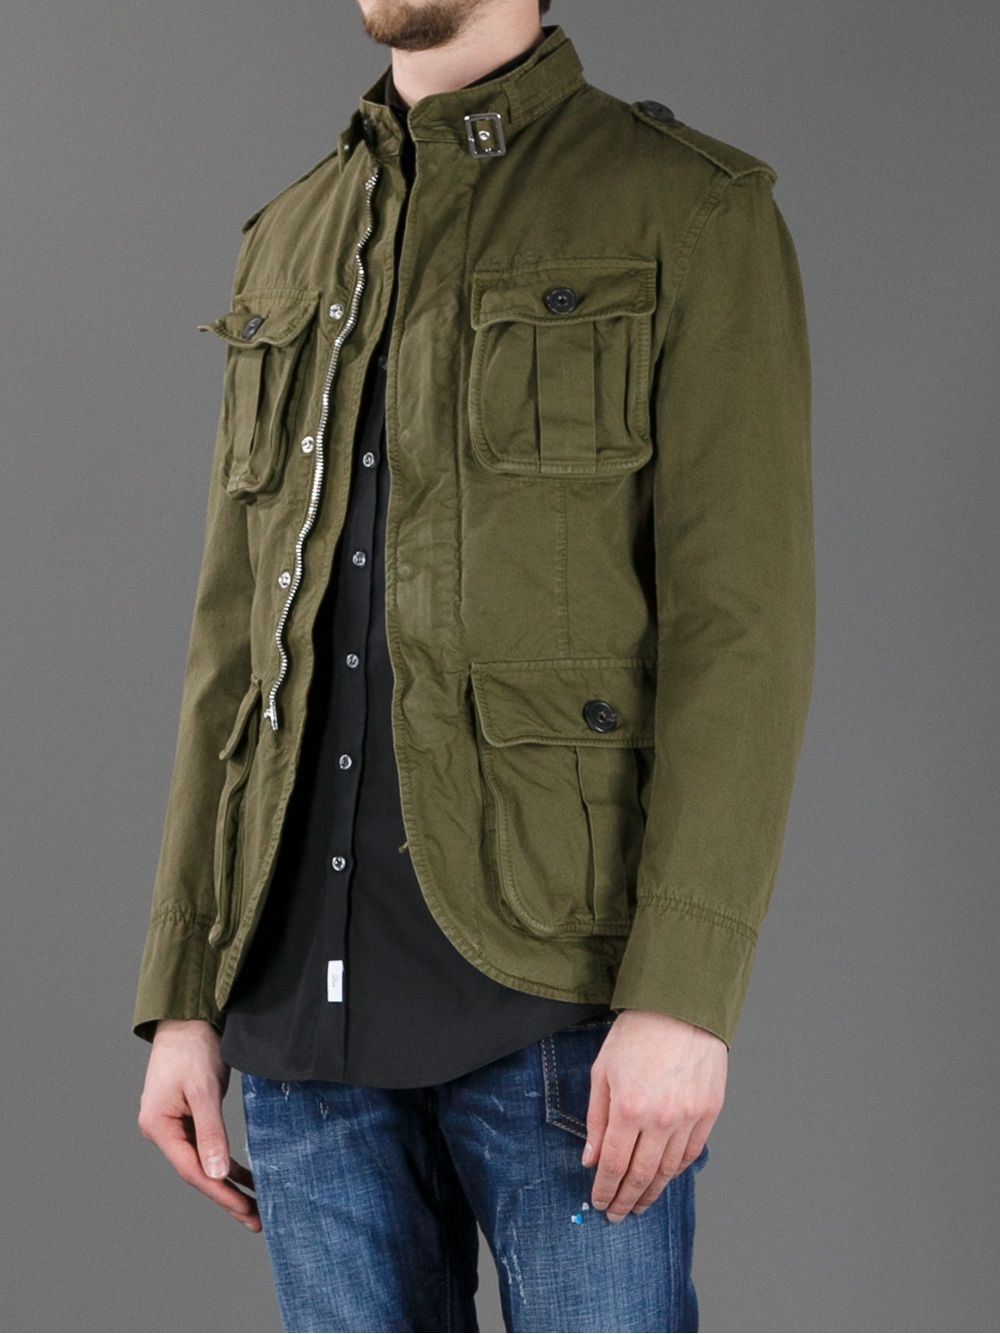 5f34100bd336 Dsquared2 Military Field Jacket - Dante 5 Men - farfetch.com ...